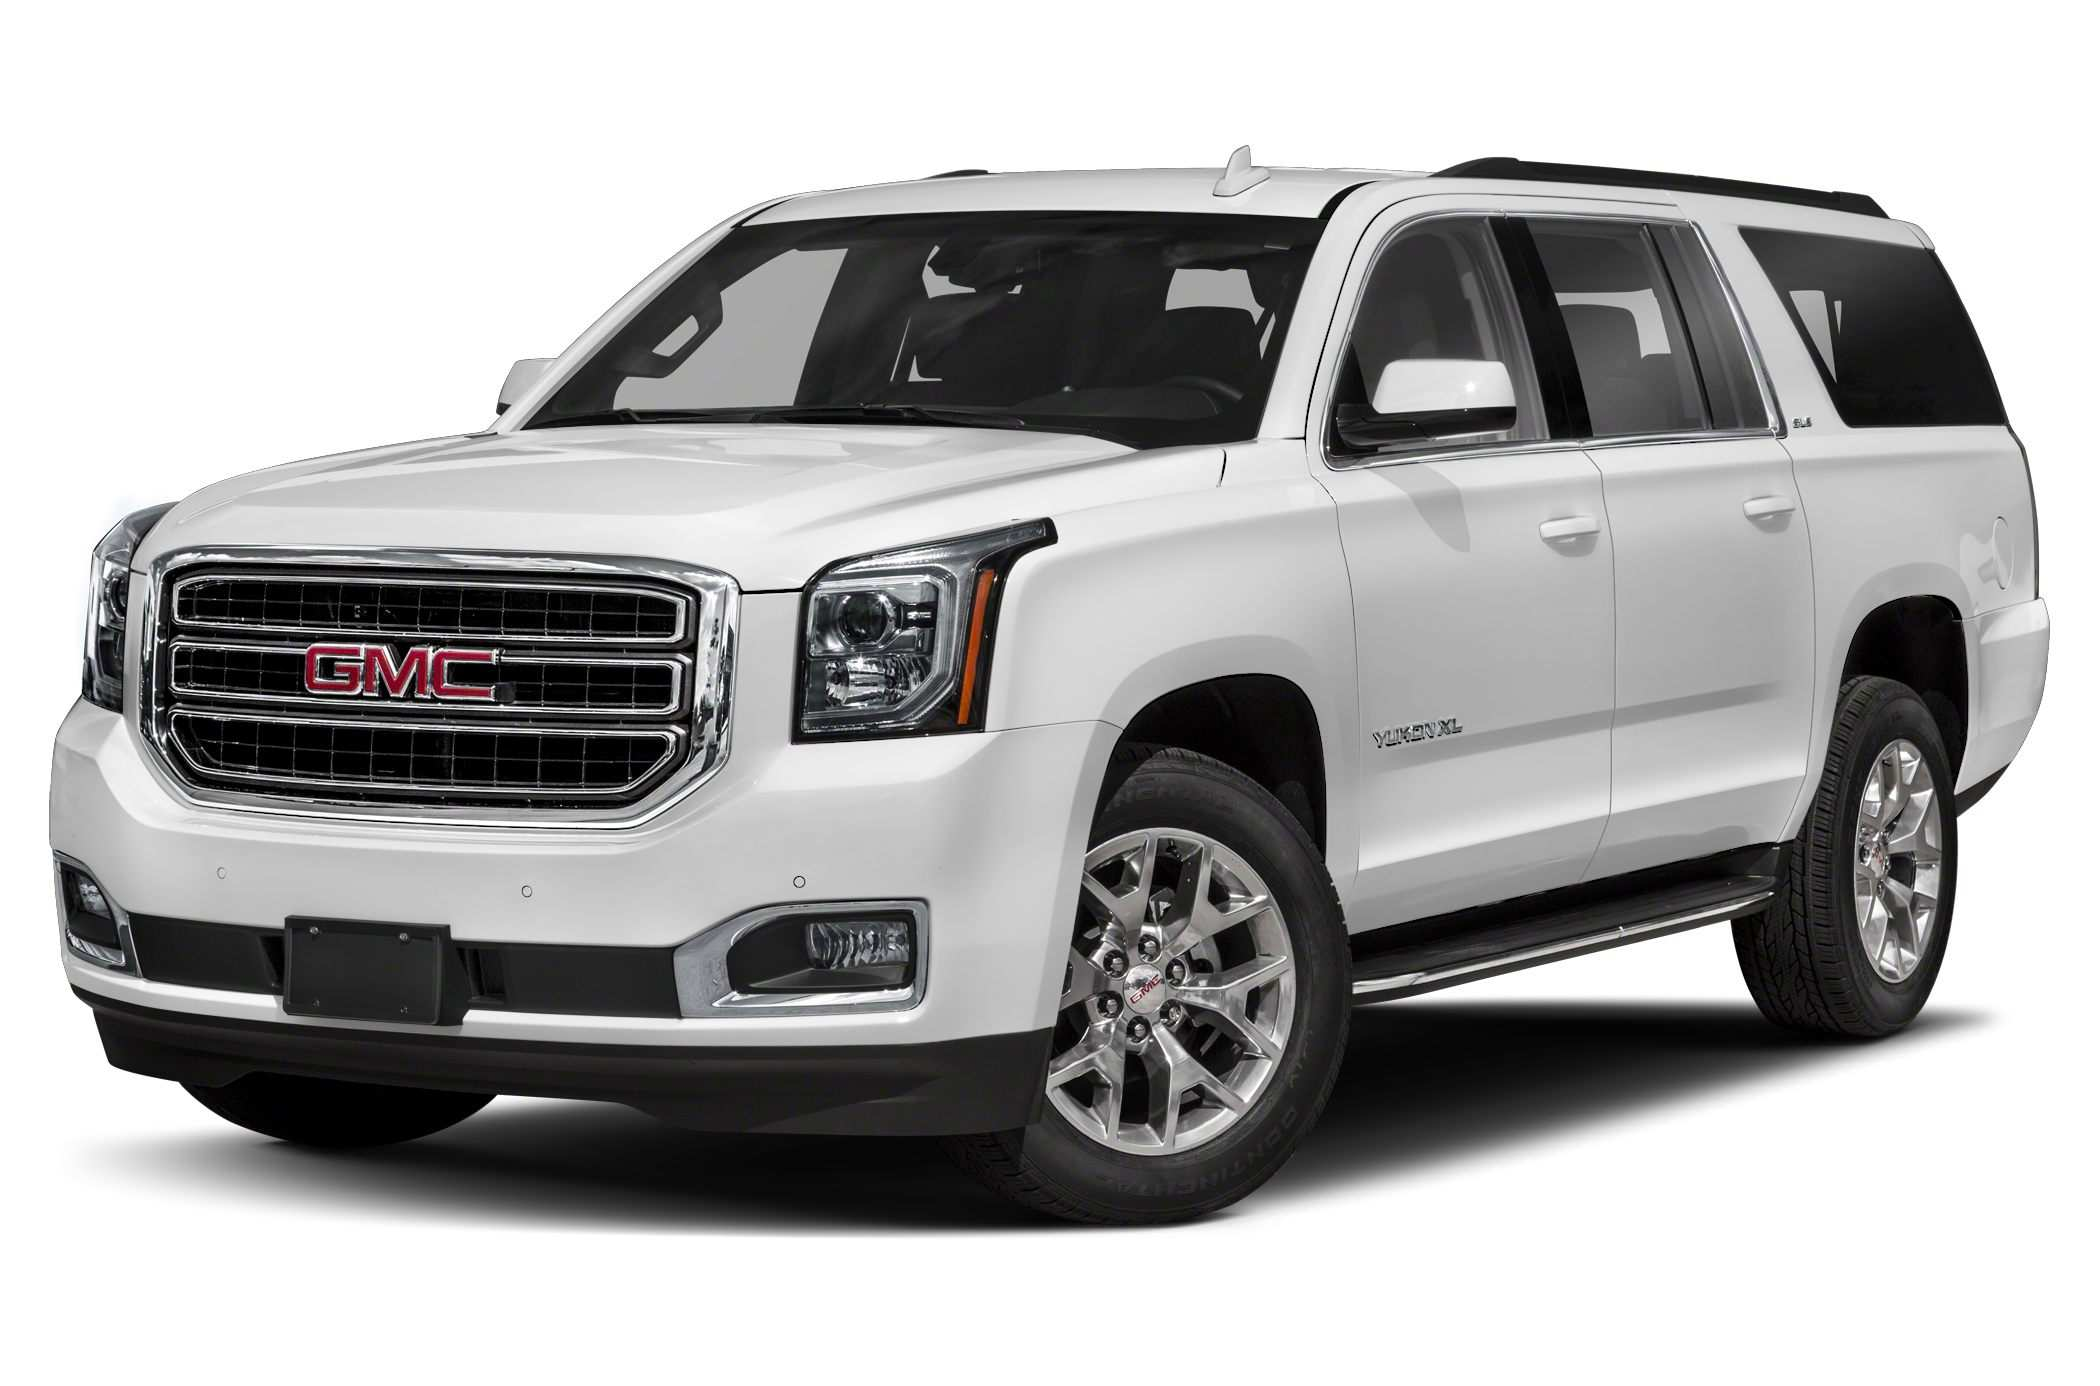 70 The Best 2019 GMC Yukon XL Rumors